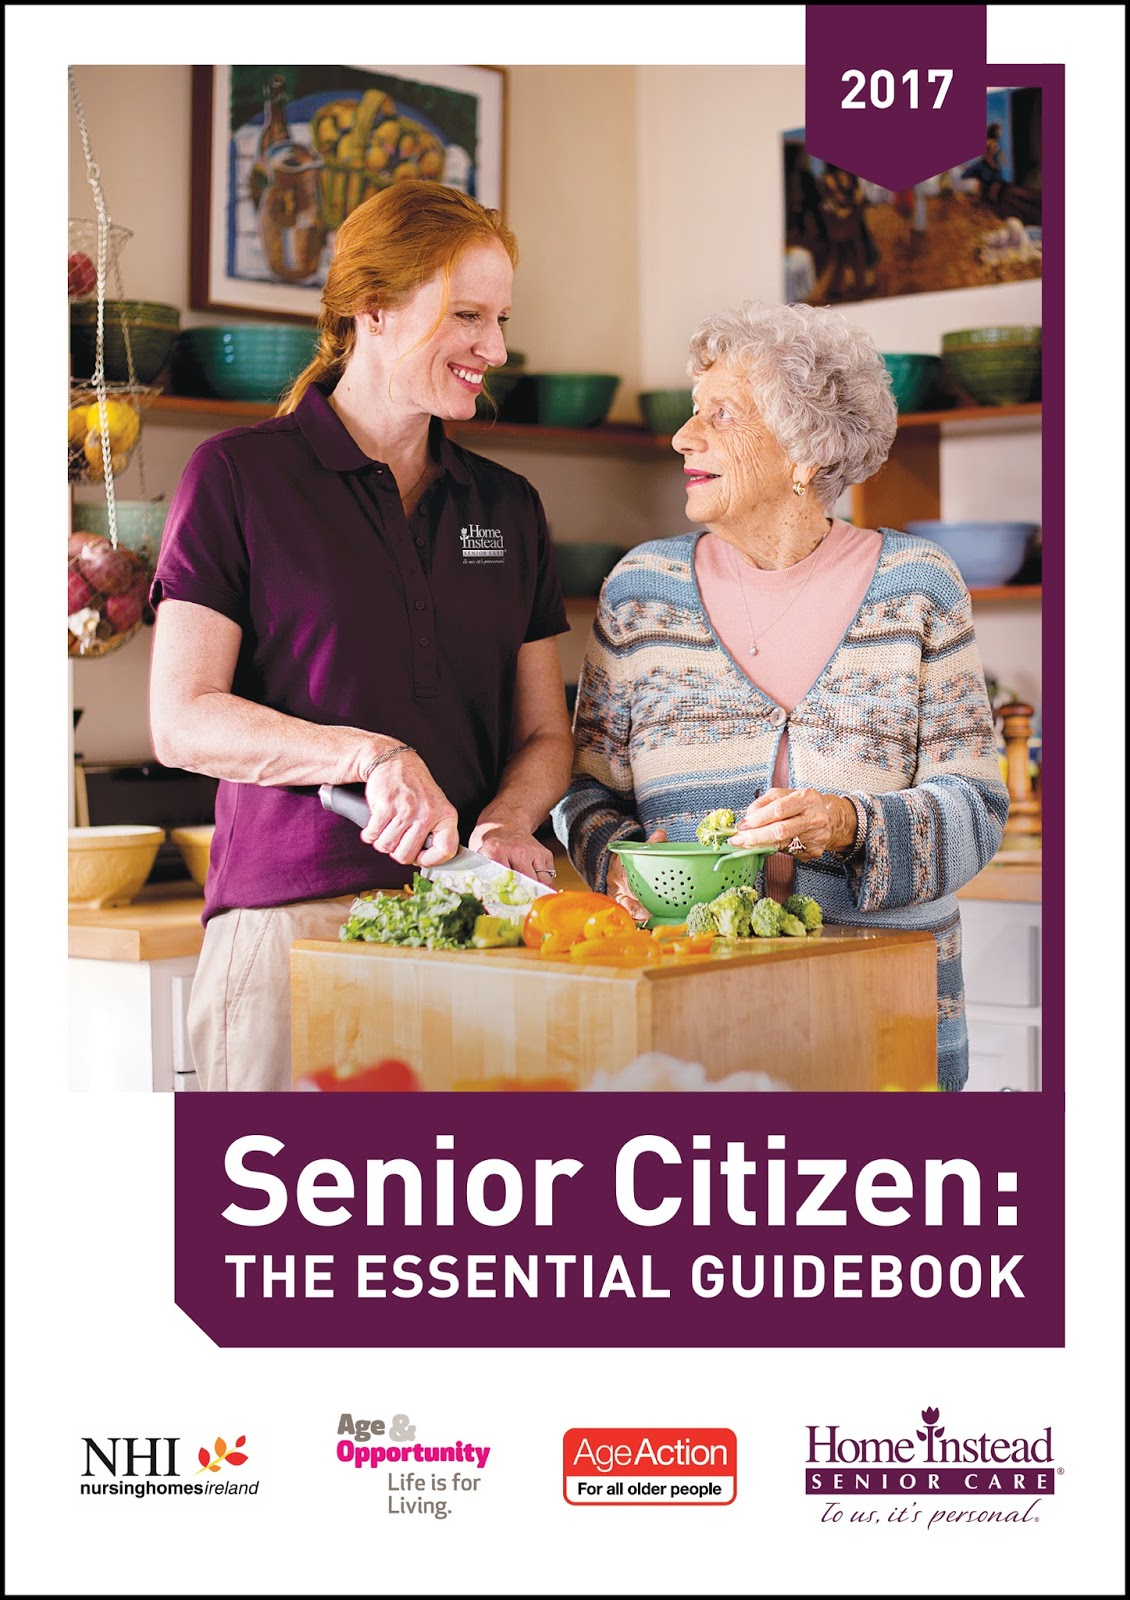 the experience of becoming a senior citizen Senior citizens have experienced a considerable improvement in their sex lives   childhood experiences have a major impact on the sexuality of senior citizens   a total of 62% of women and 71% of men report being highly.